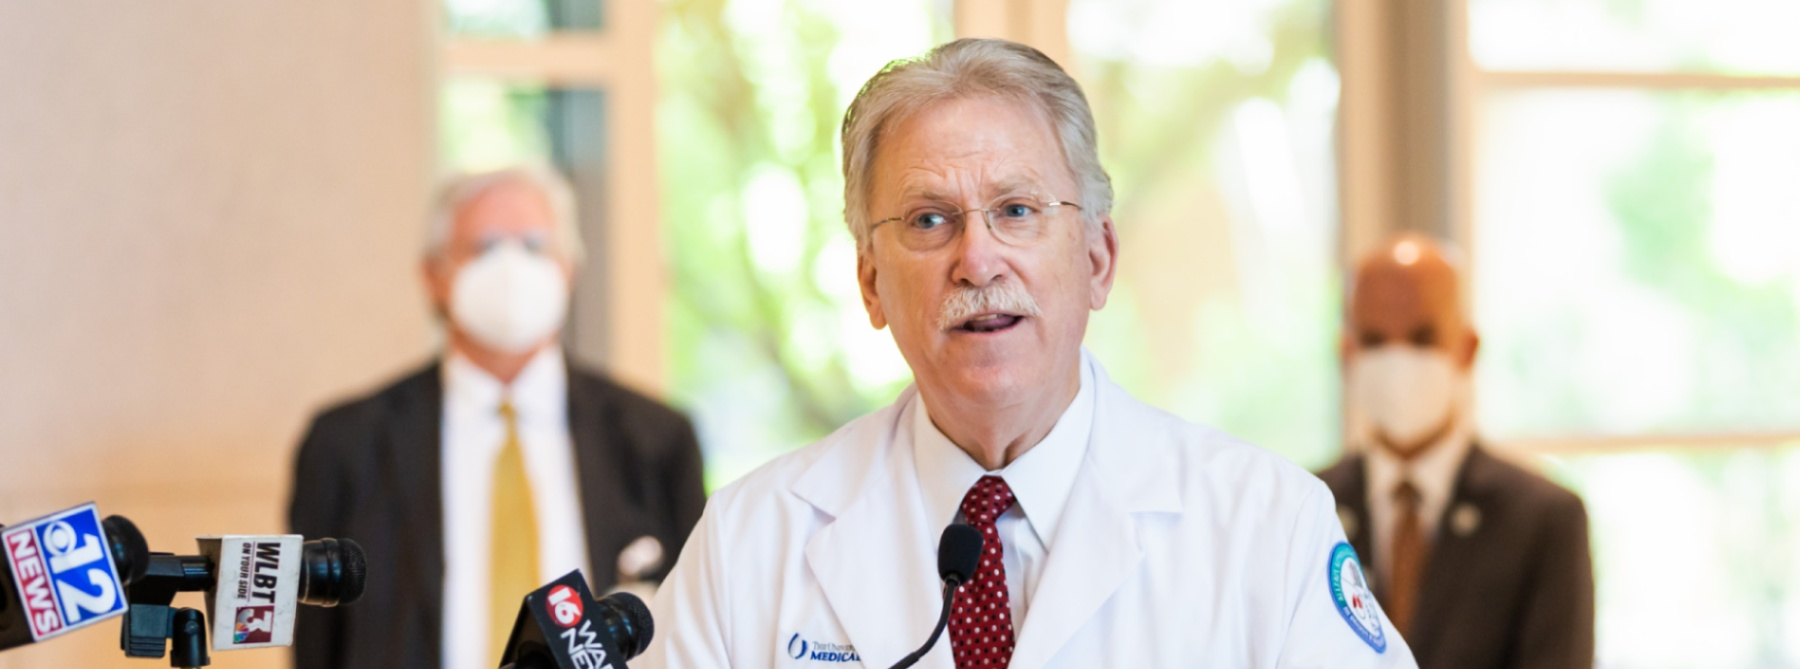 Dr. Marshall speaks at a press conference.